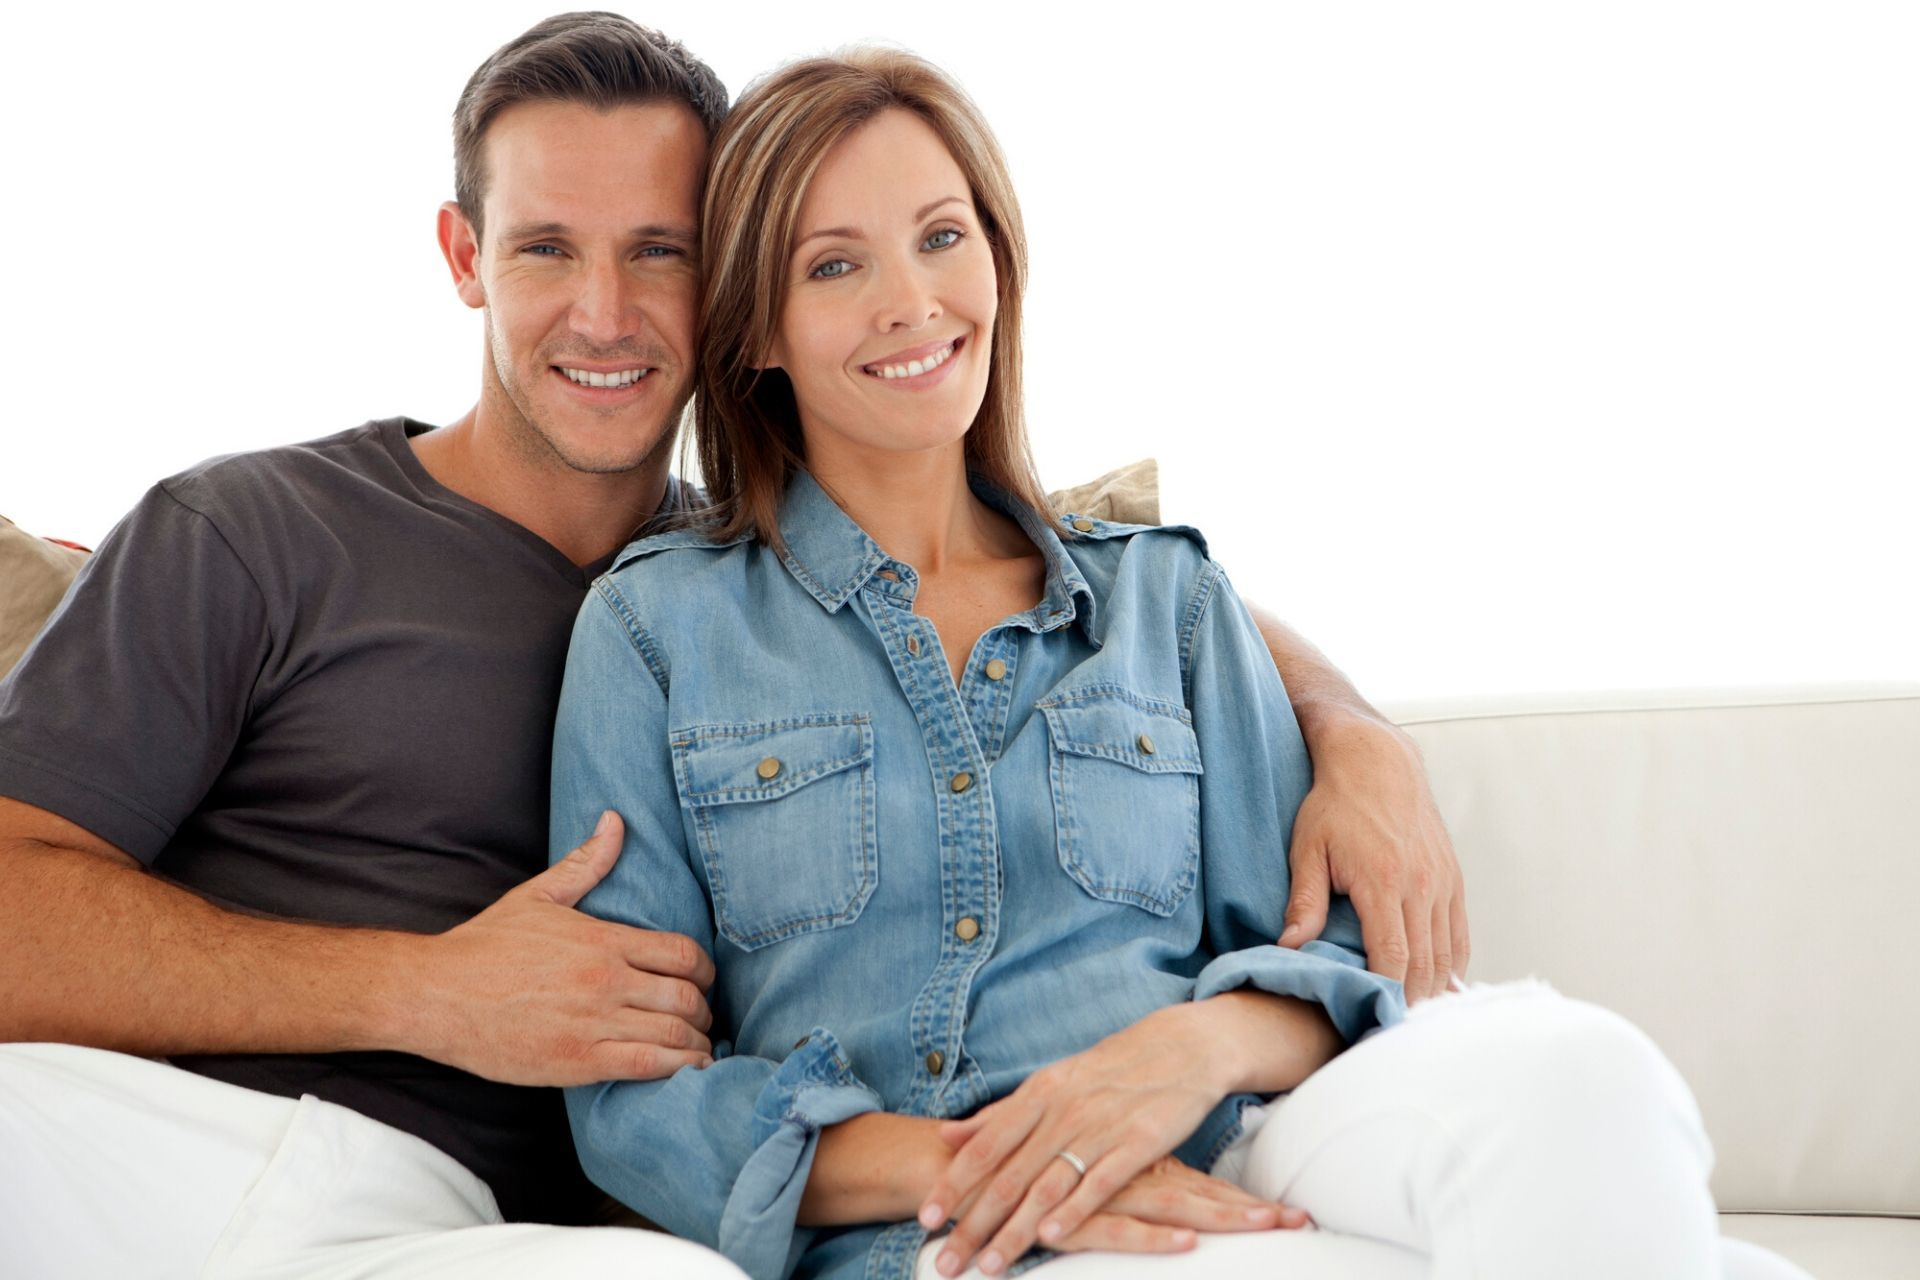 25 Fun Stay at Home Date Ideas for Couples